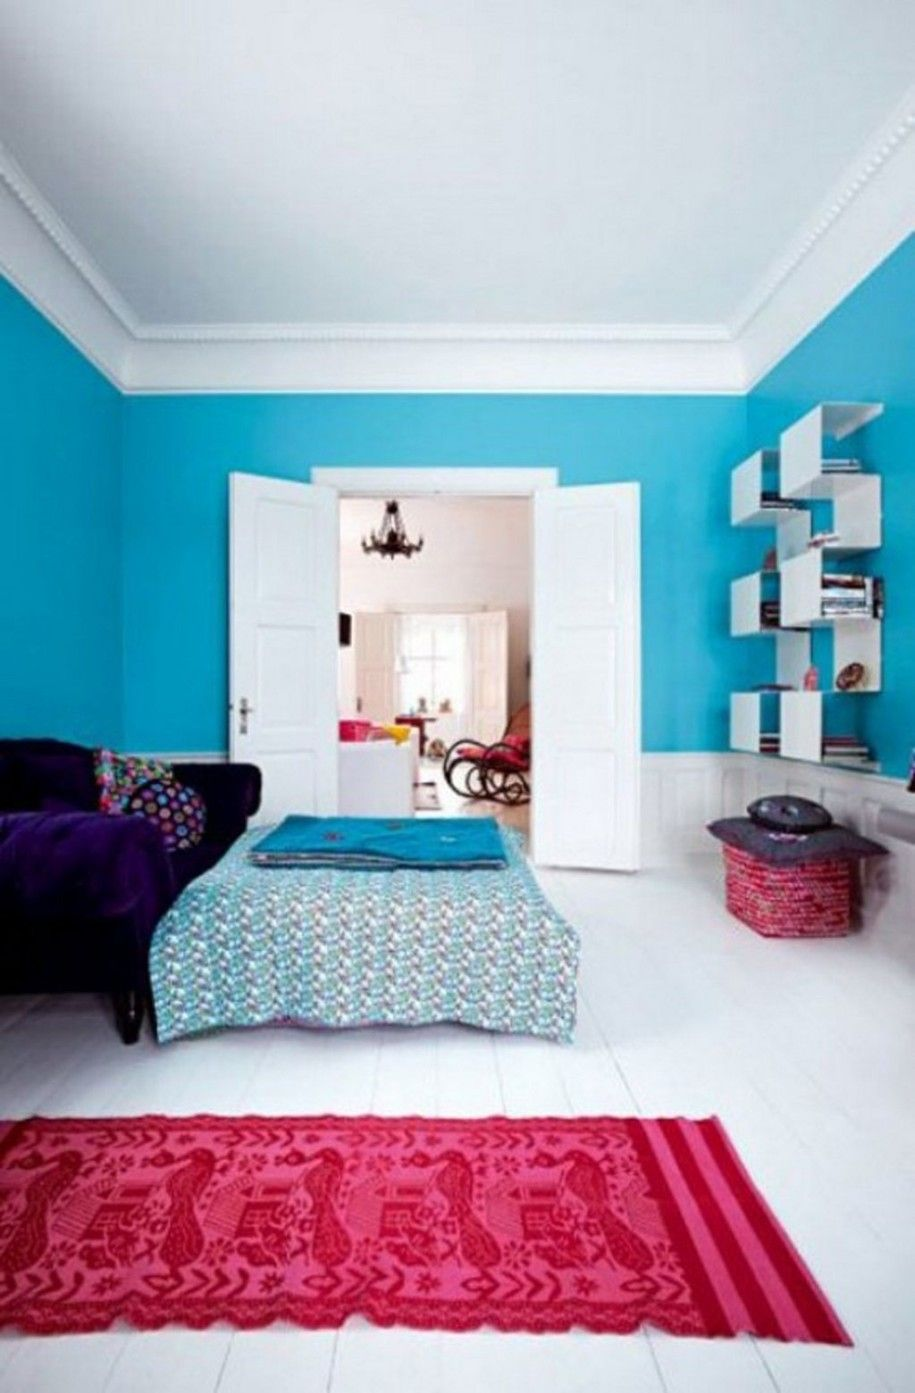 cool green and blue room design ideas contemporary bedroom with blue